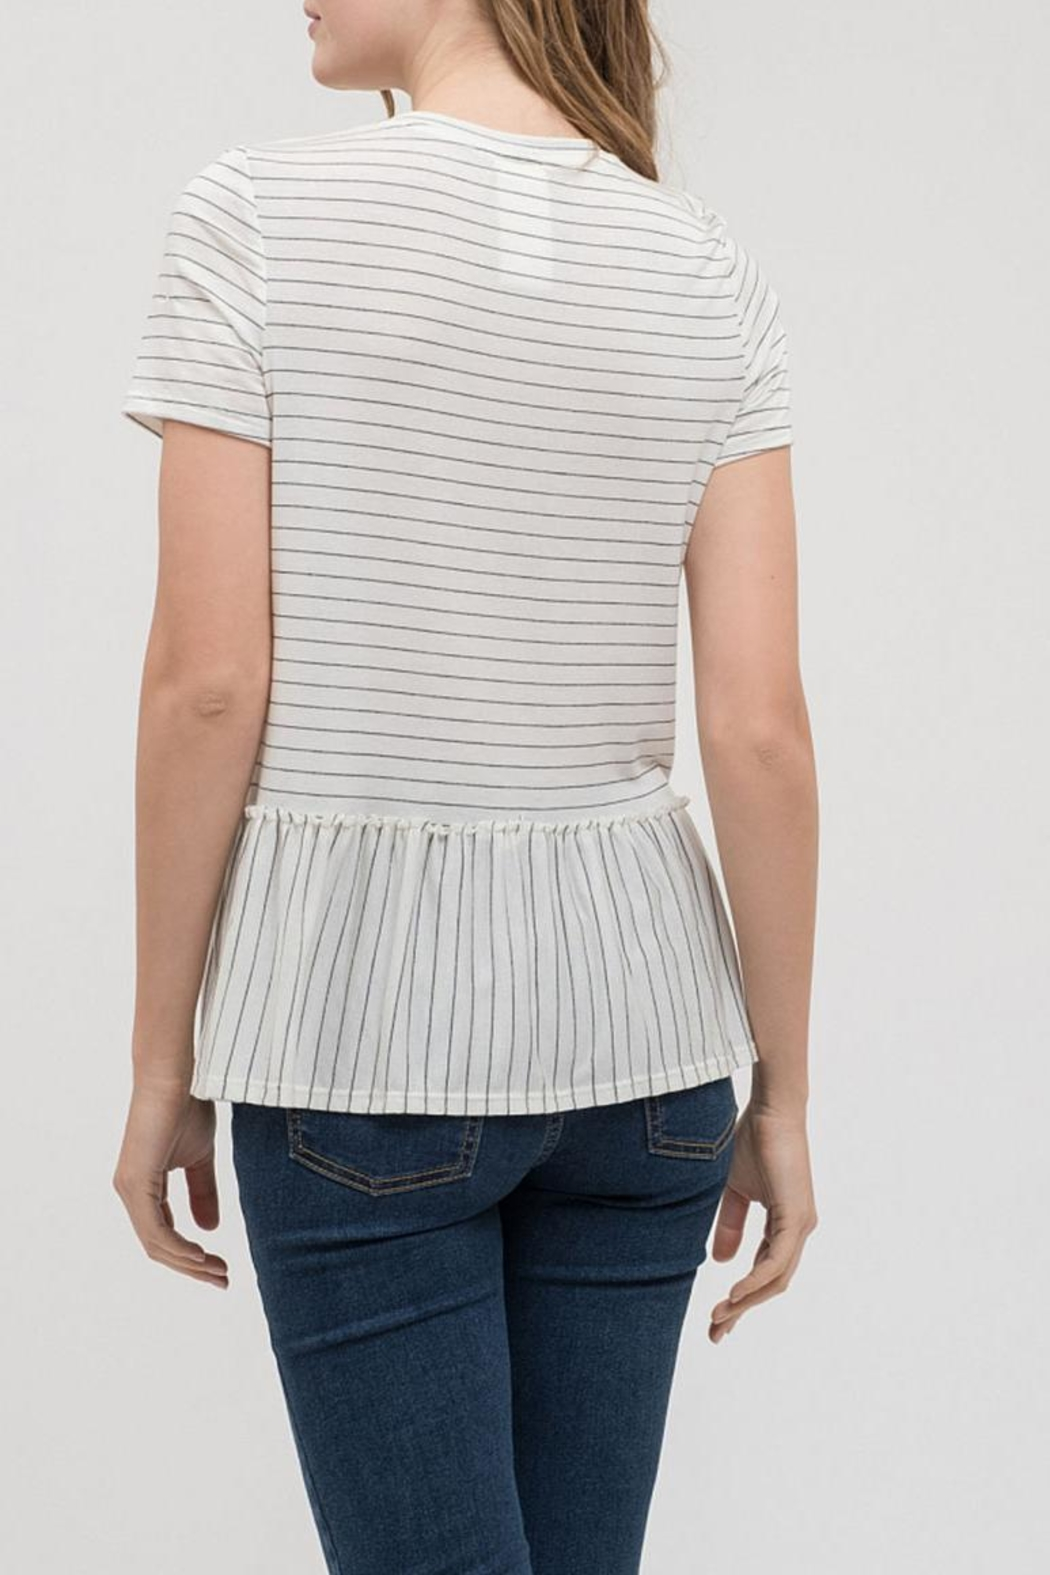 Blu Pepper Baby Striped Tee - Front Full Image